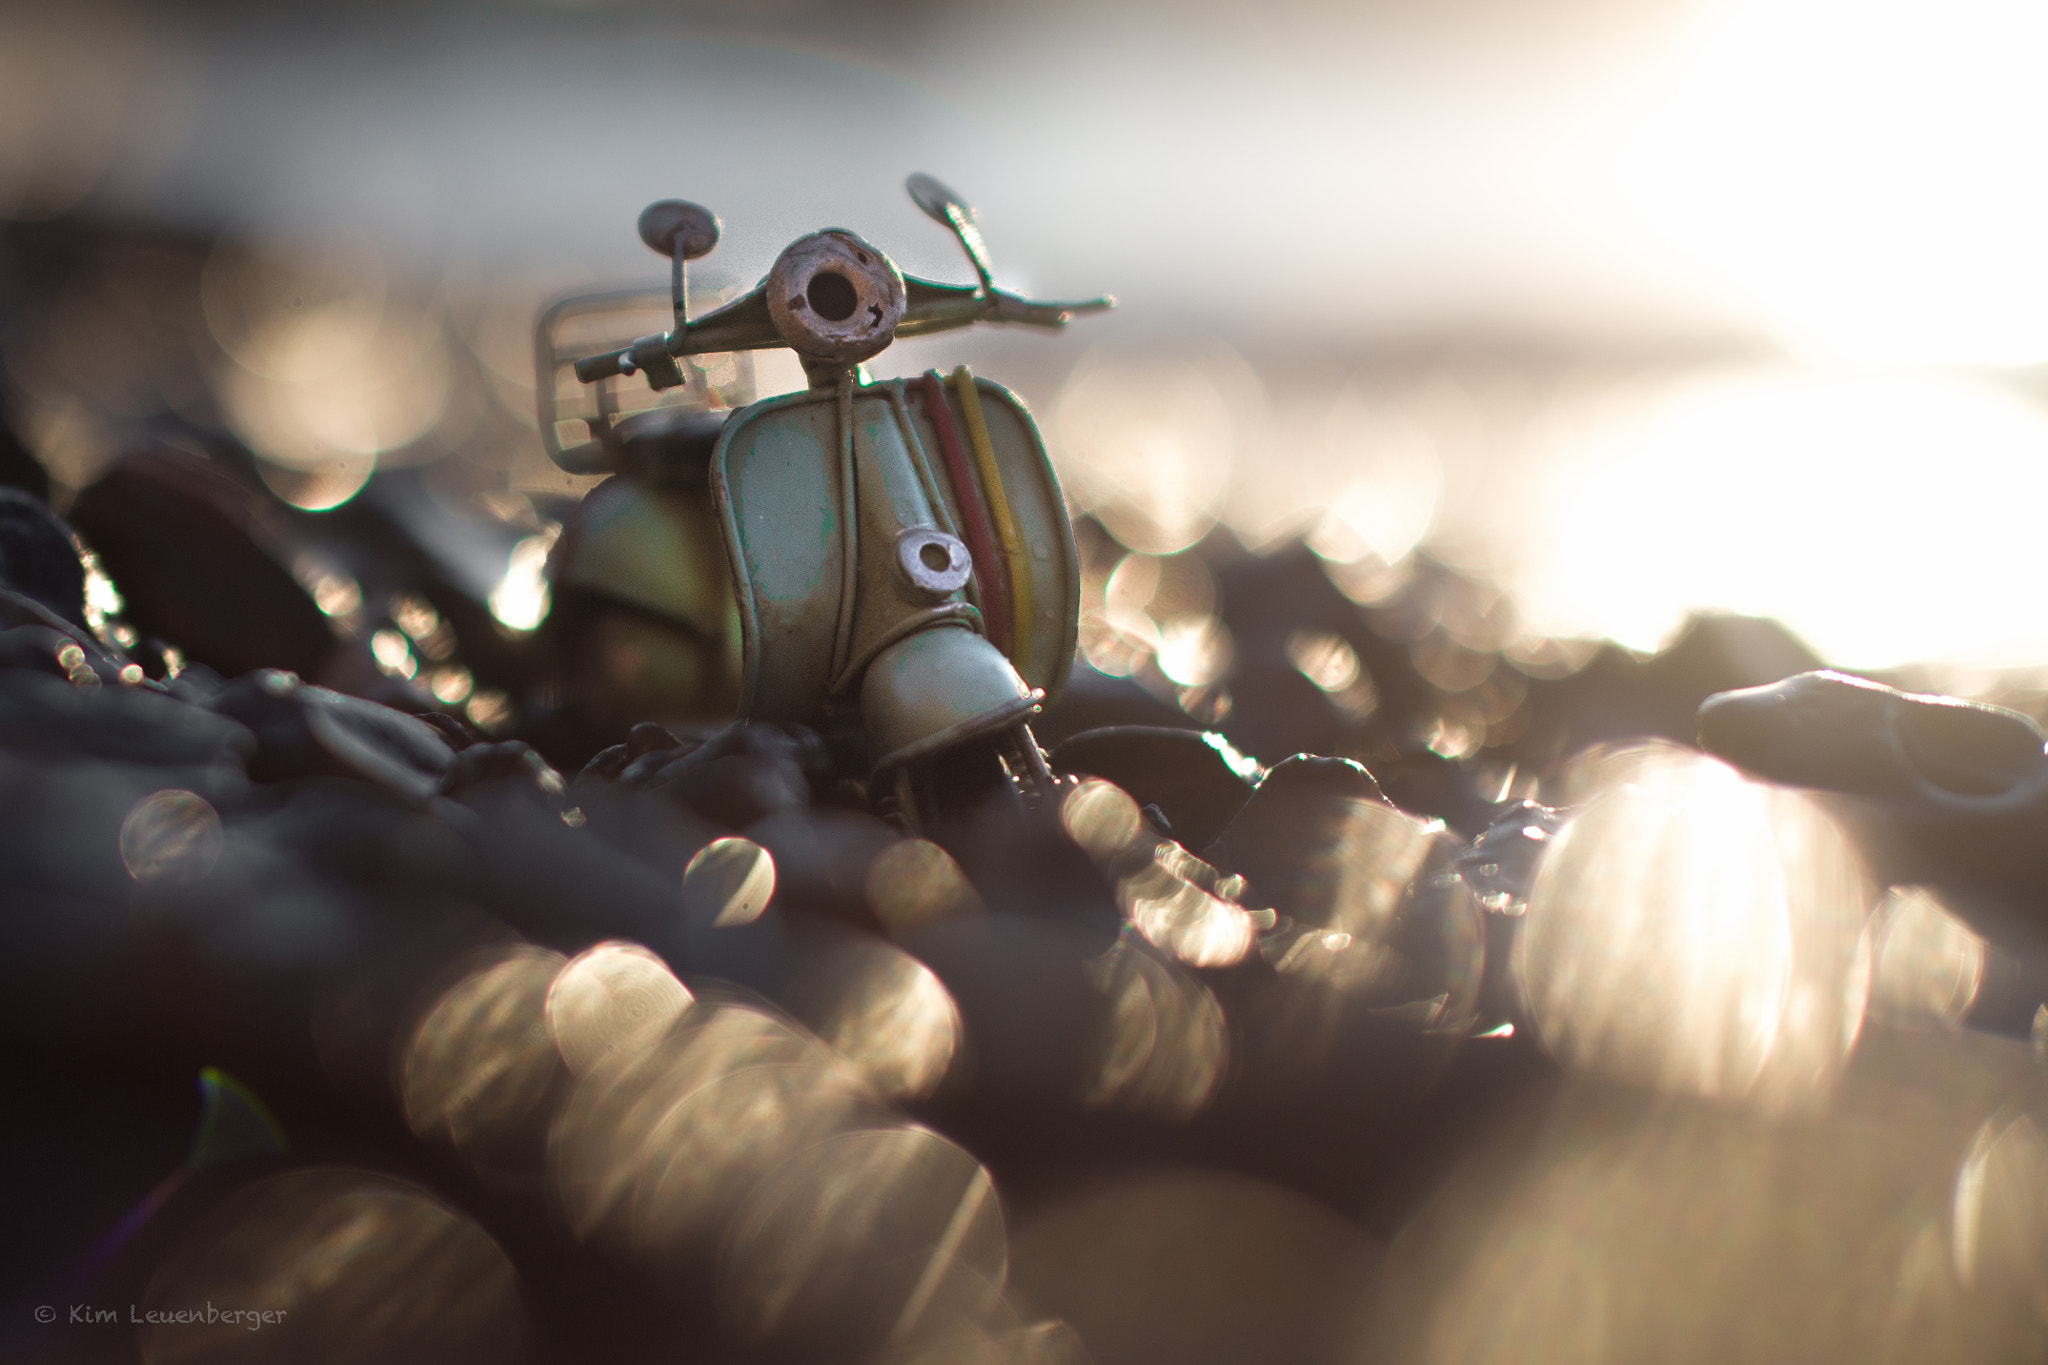 Photograph Shine, Shine on by Kim Leuenberger on 500px